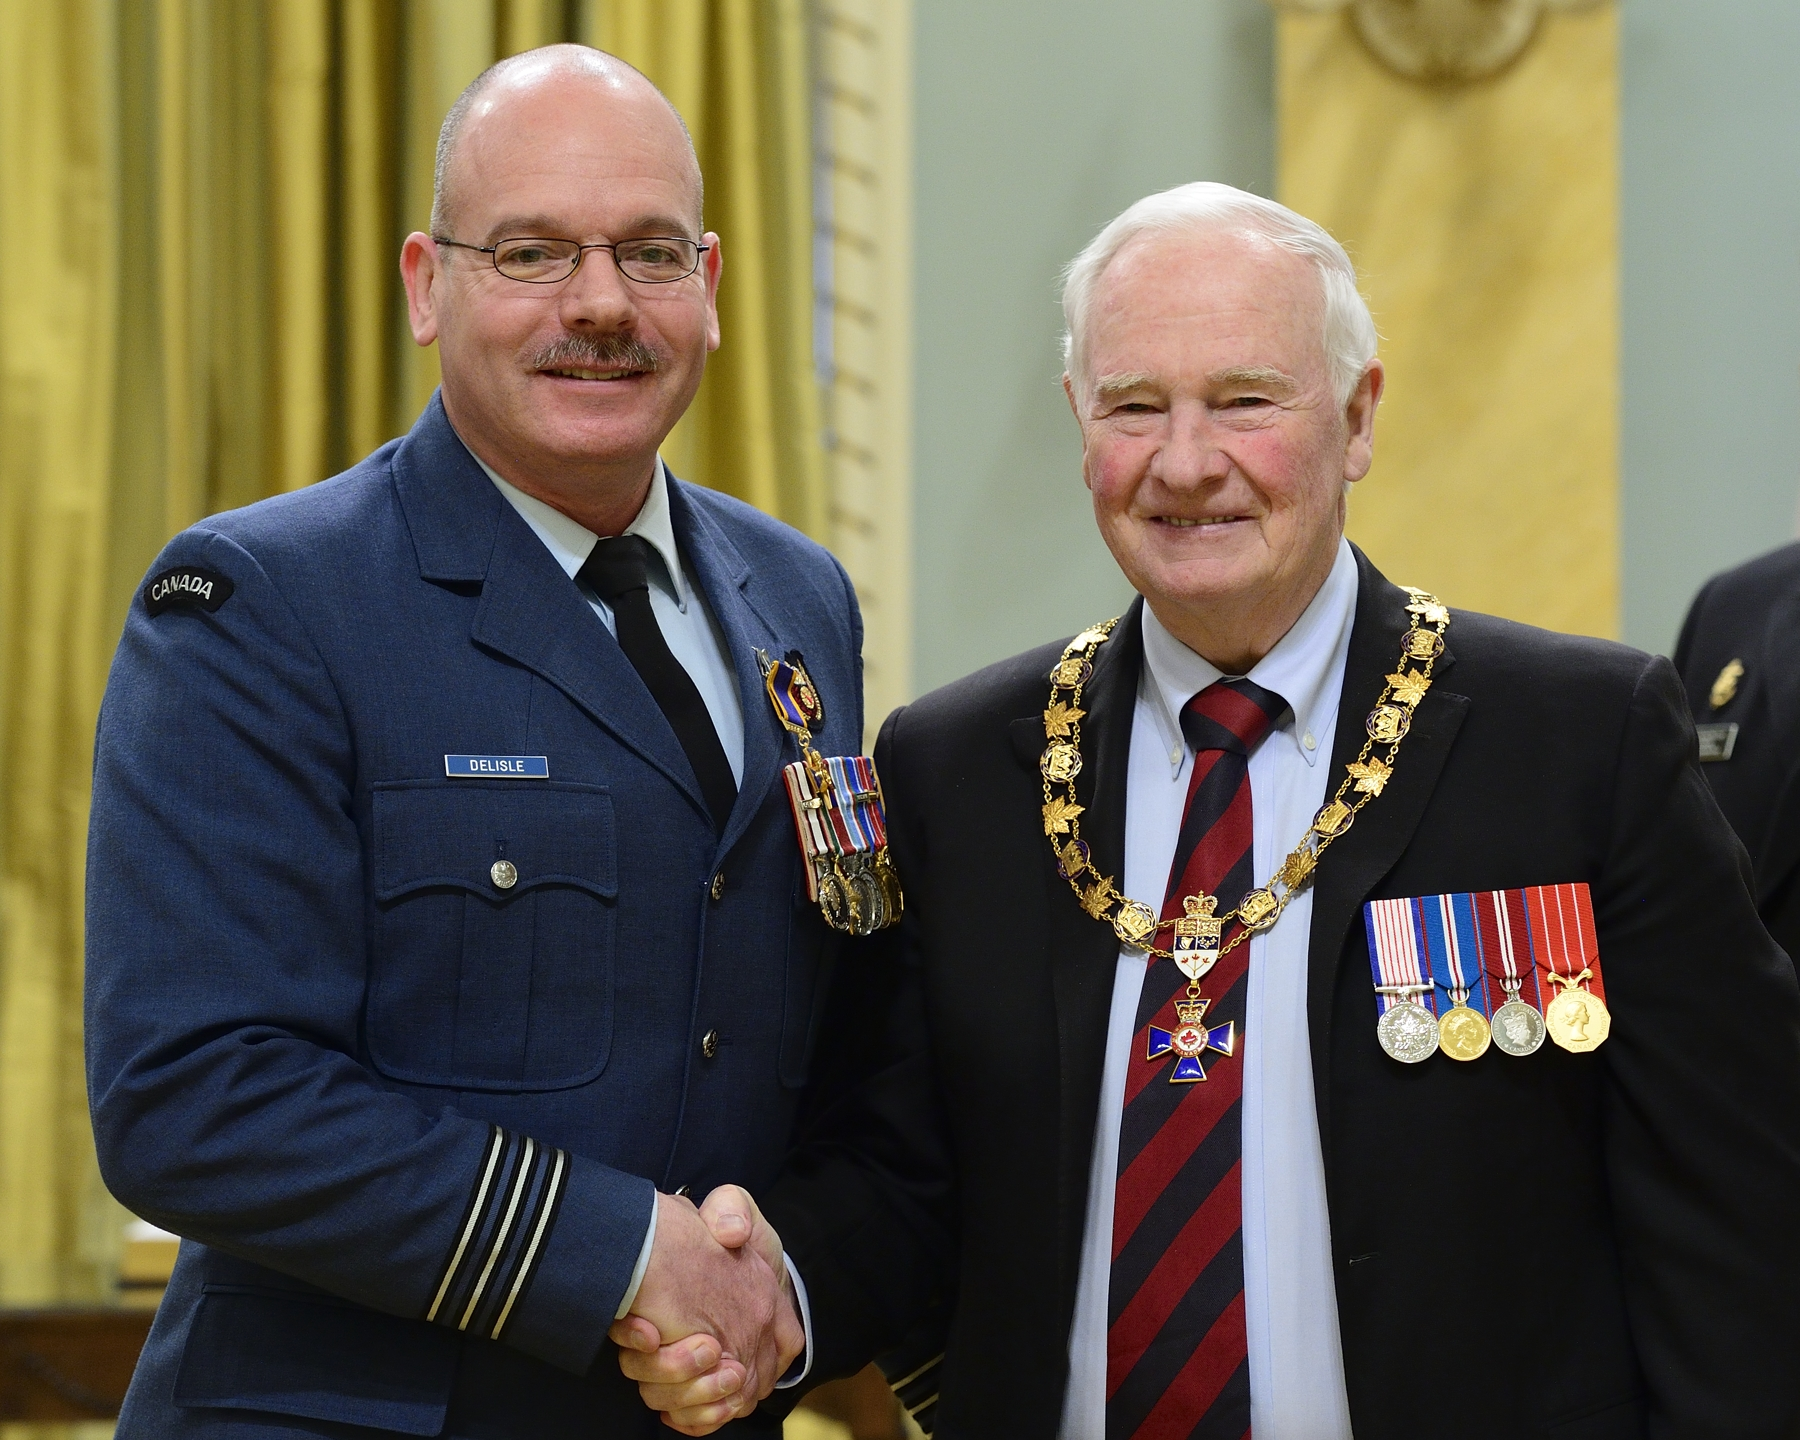 Governor General and Commander-in-Chief of Canada David Johnston presents the Order of Military Merit to Lieutenant-Colonel Joseph Jean Marc Delisle, OMM, CD, from 21 Aerospace Control and Warning Squadron, Hornell Heights, Ontario. PHOTO: Sergeant Johanie Mahieu, Rideau Hall ©, GG05-2017-0075-019-delisle